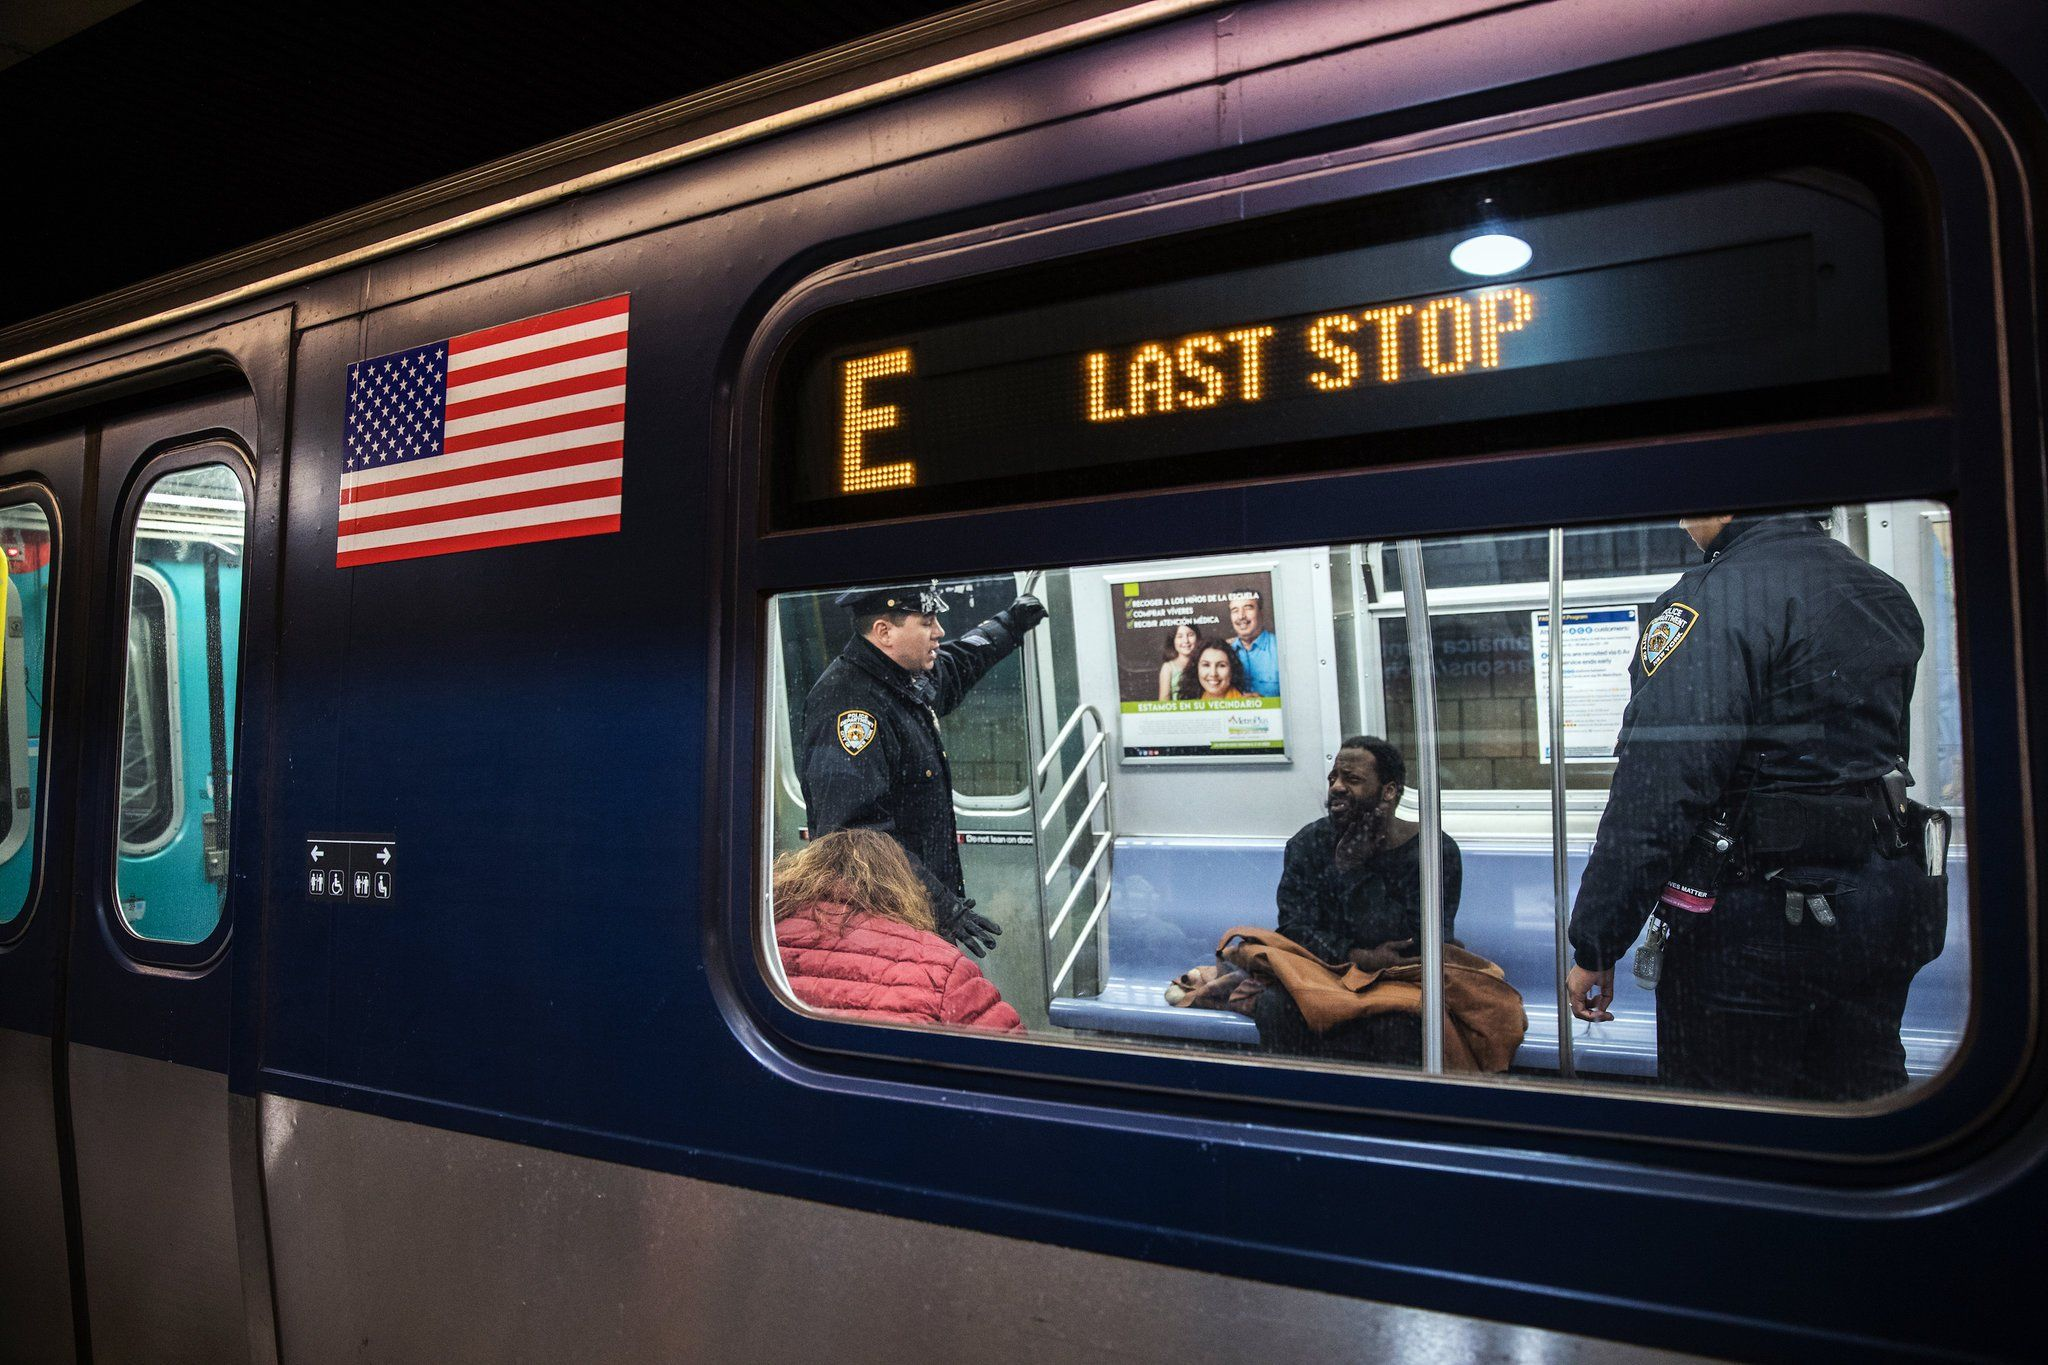 As Homeless Take Refuge In Subway More Officers Are Sent To Help Published 2018 New York Subway Homeless Subway